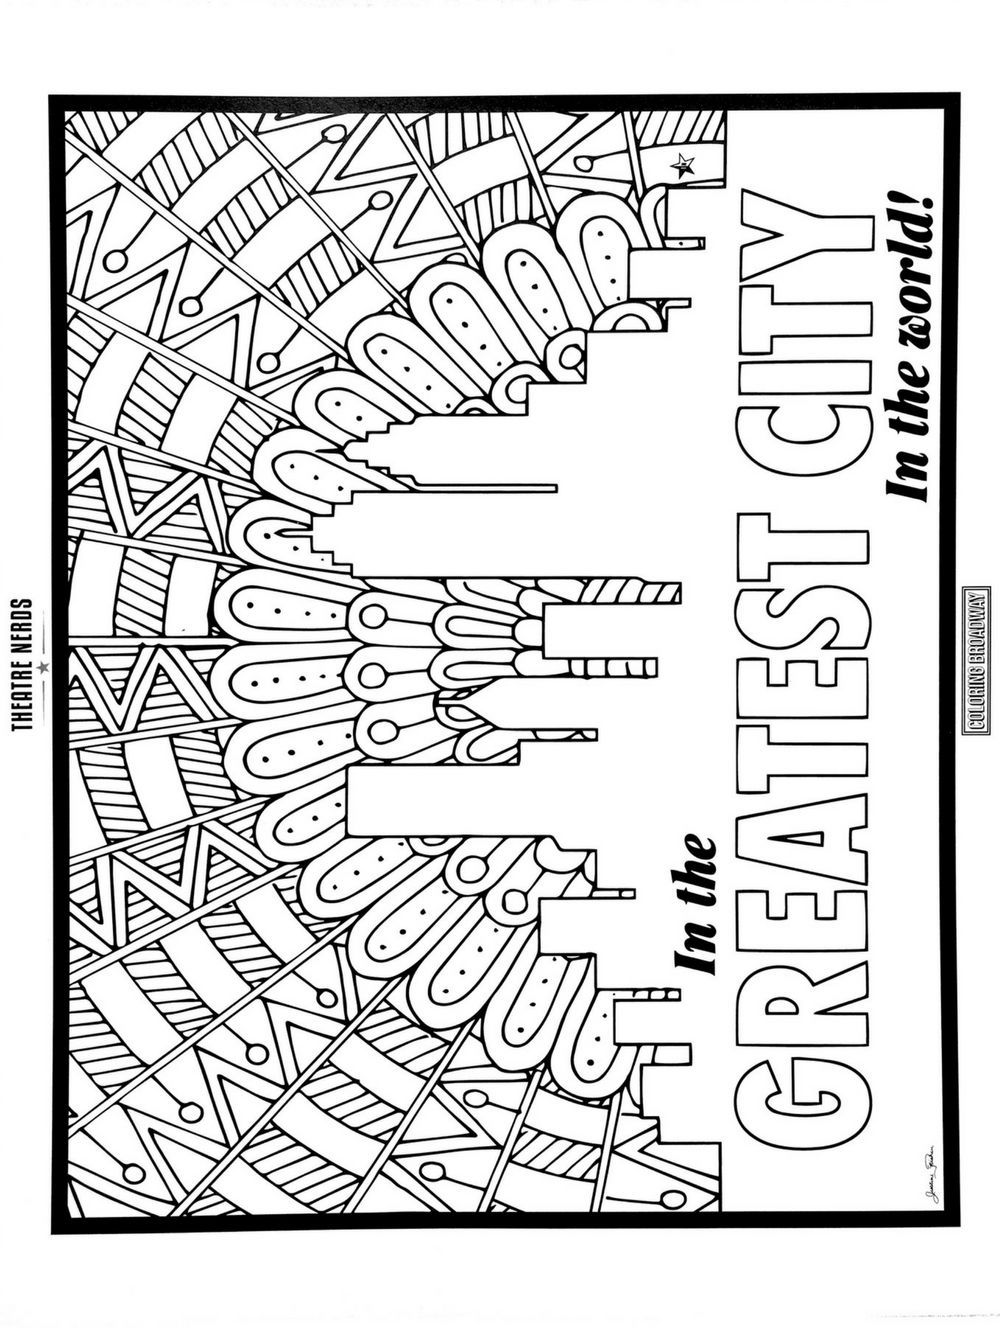 Hamilton Inspired Coloring Pages- Set One  Coloring pages